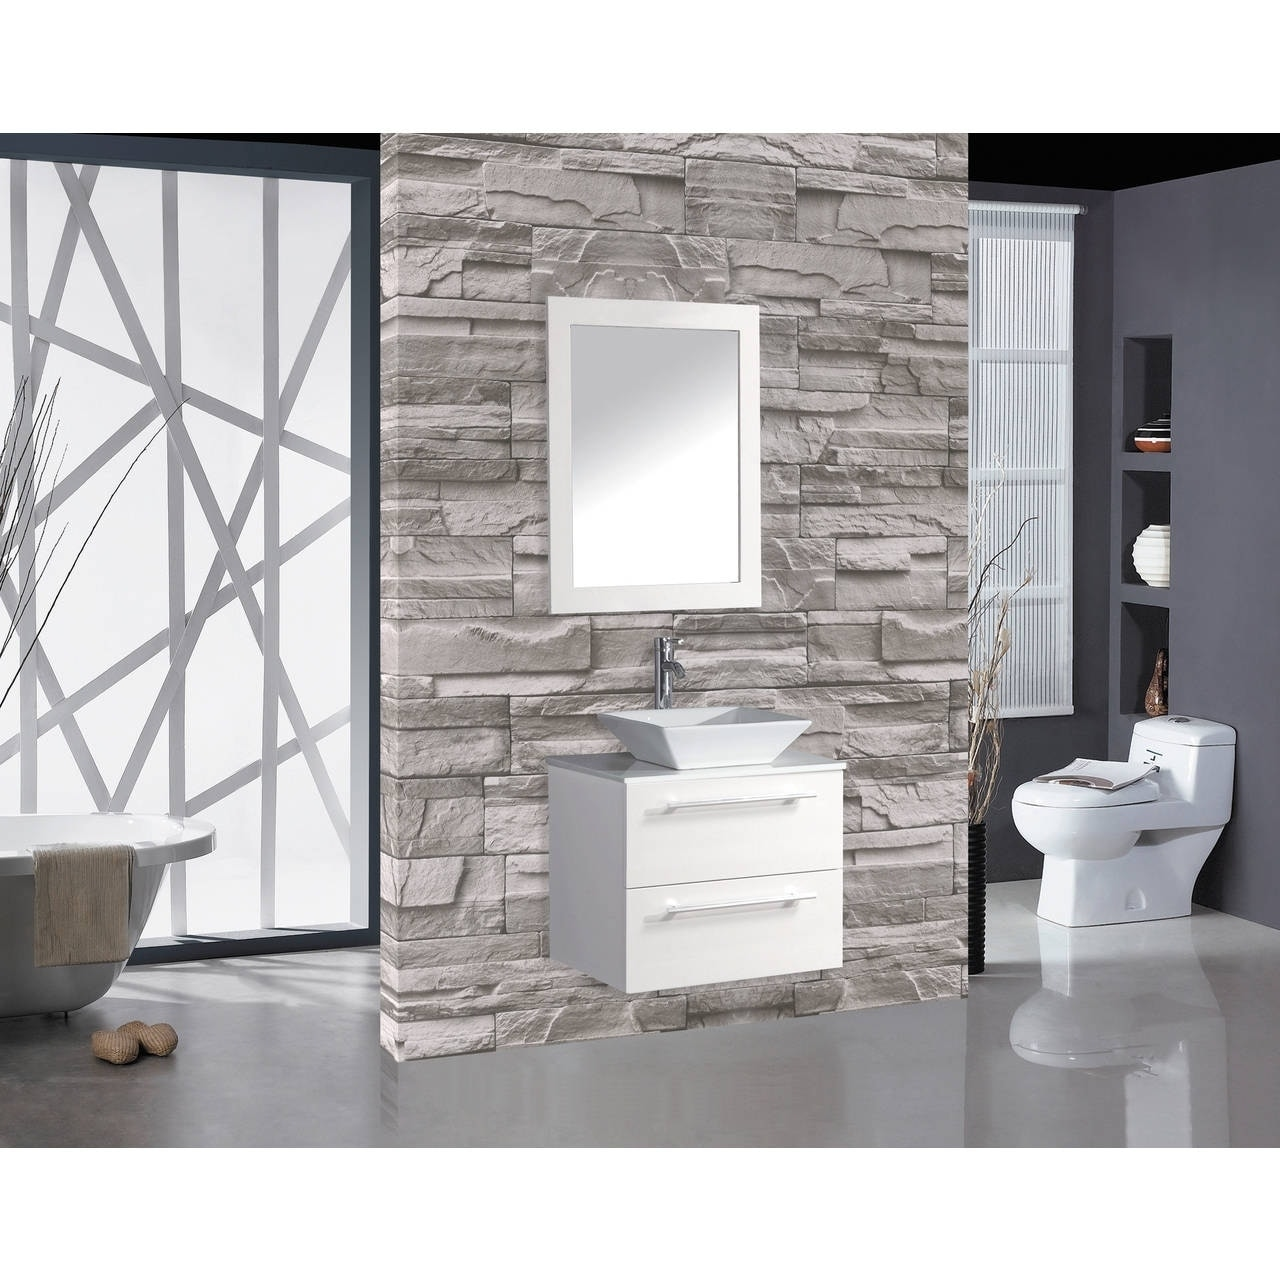 Shop Mtd Vanities Malta Painted White Woodoakceramic 36 Inch